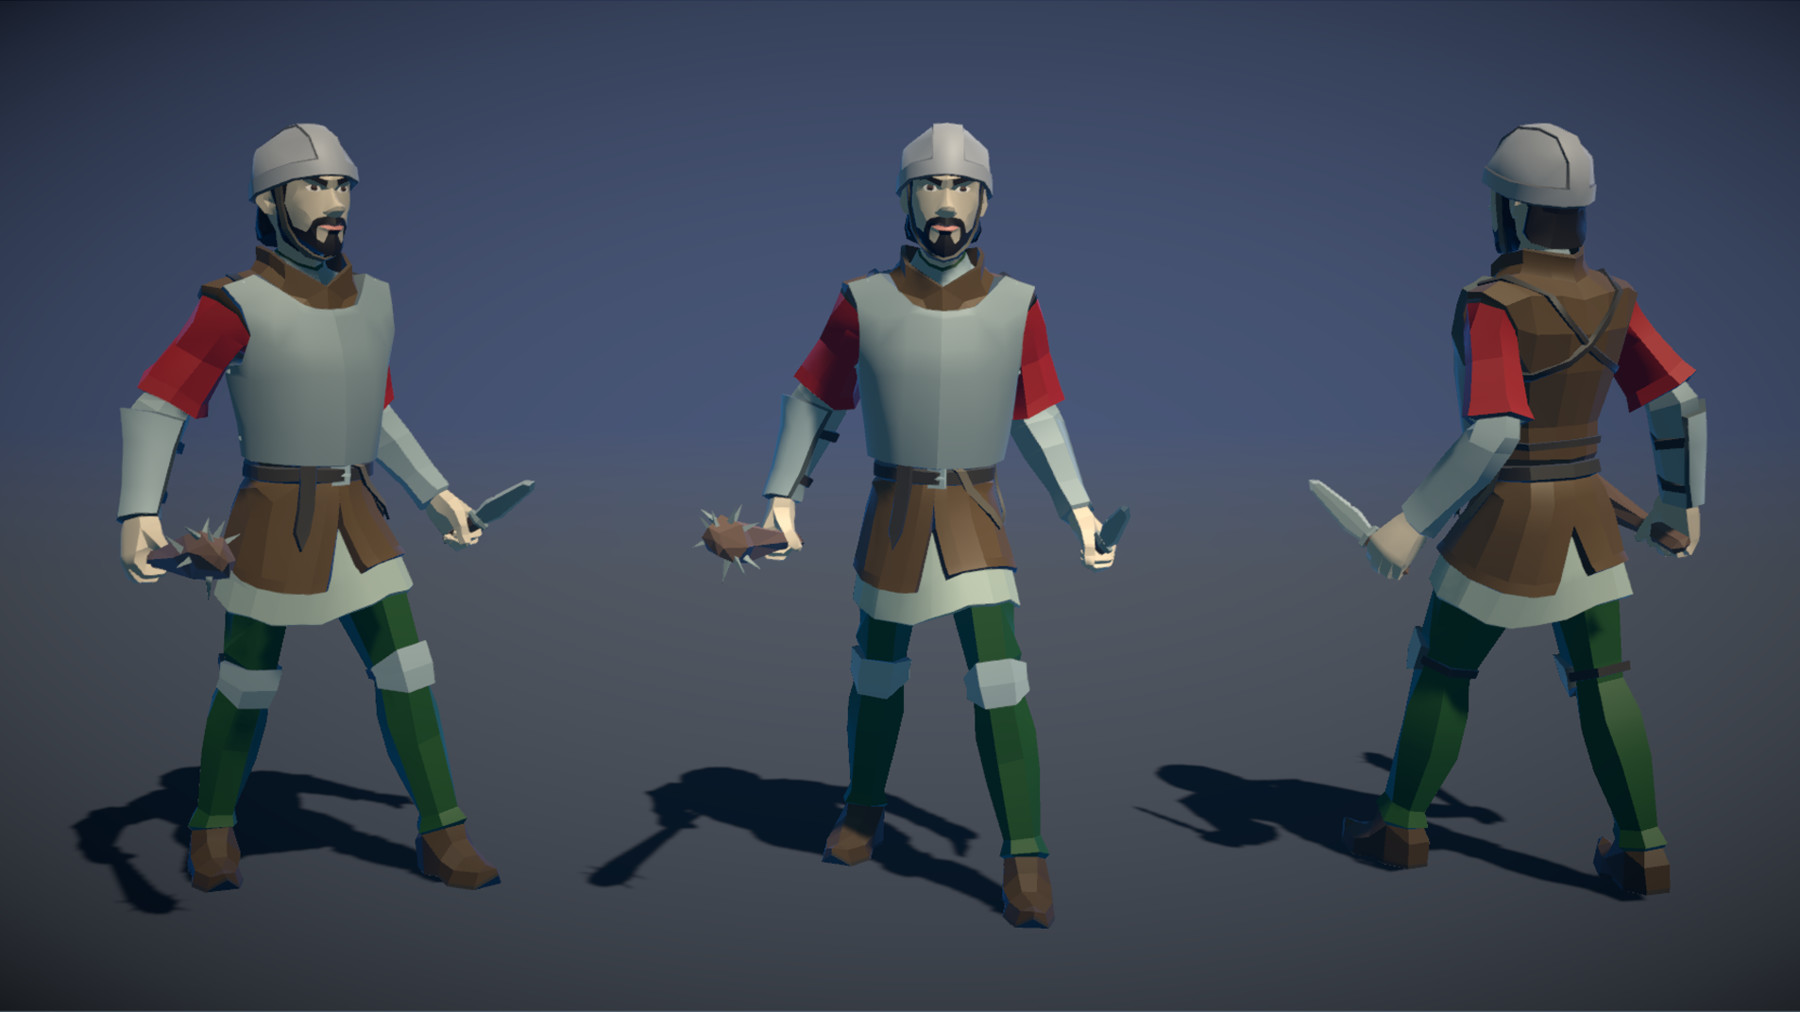 Pt medieval lowpoly characters militia 03